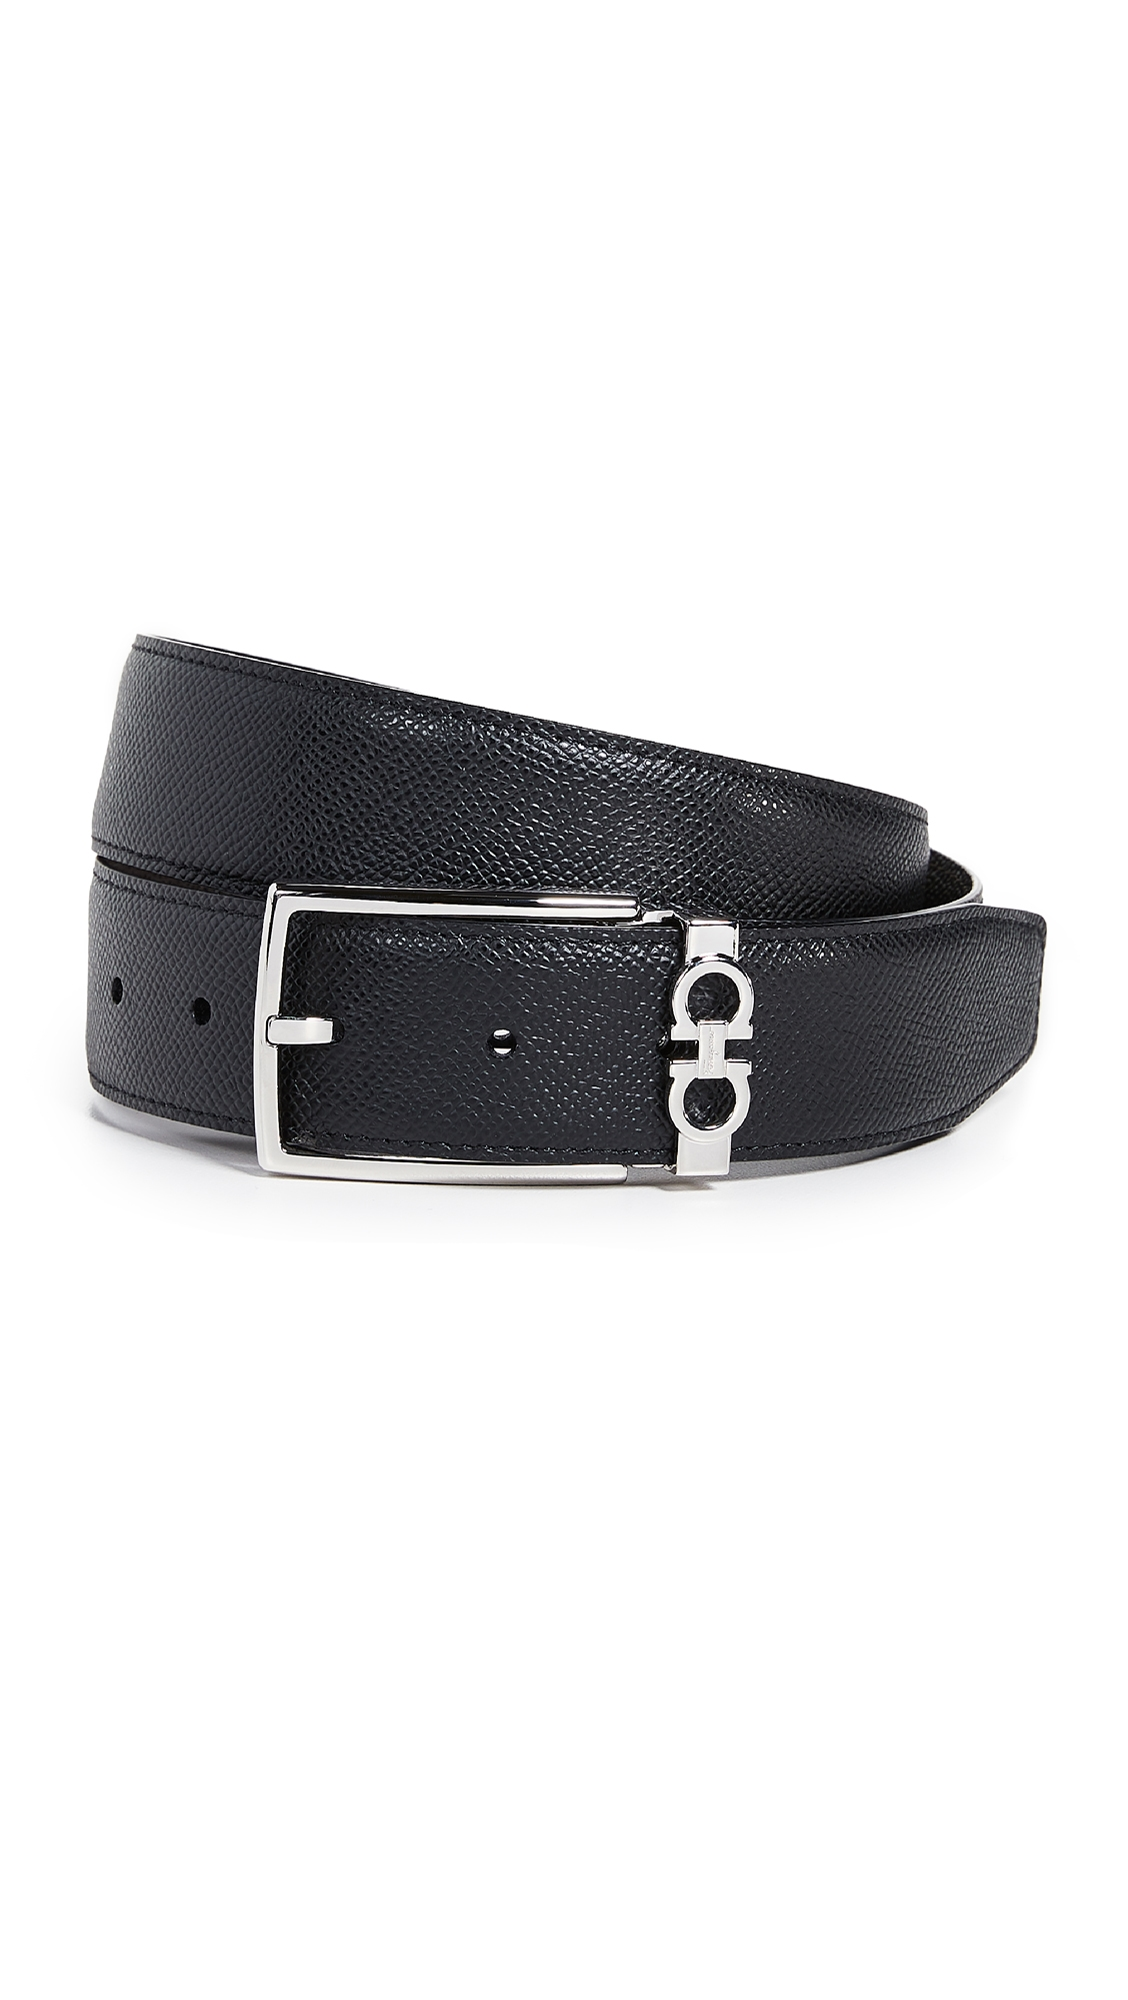 Salvatore Ferragamo Gancio Reversible Belt